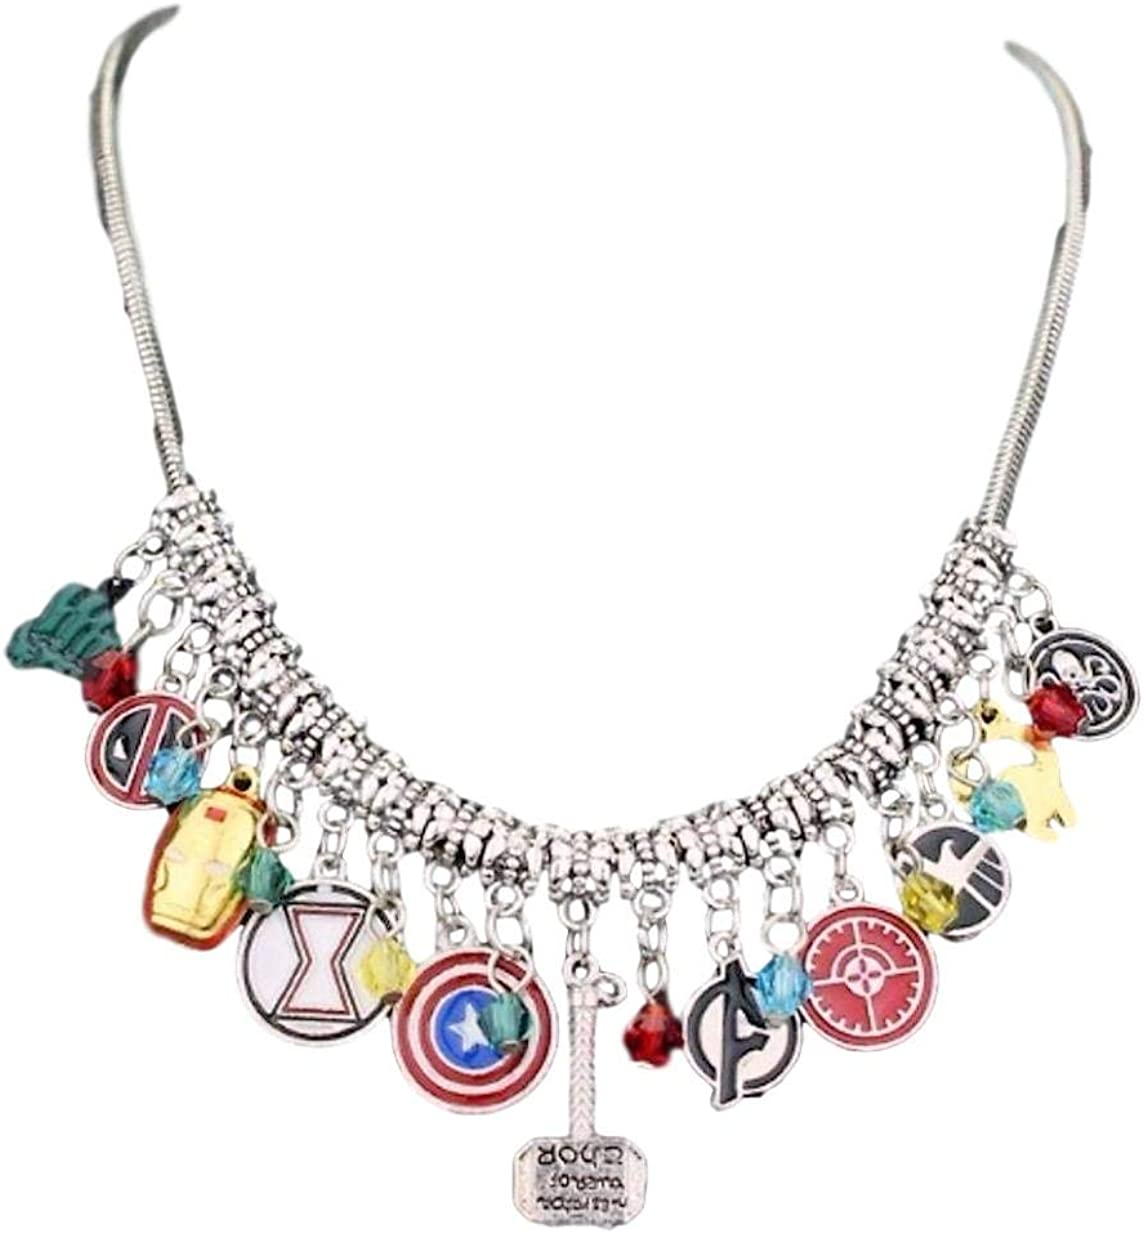 New Horizons Production The Avengers Charms OFFicial mail Free shipping anywhere in the nation order Themed Silvertone 11